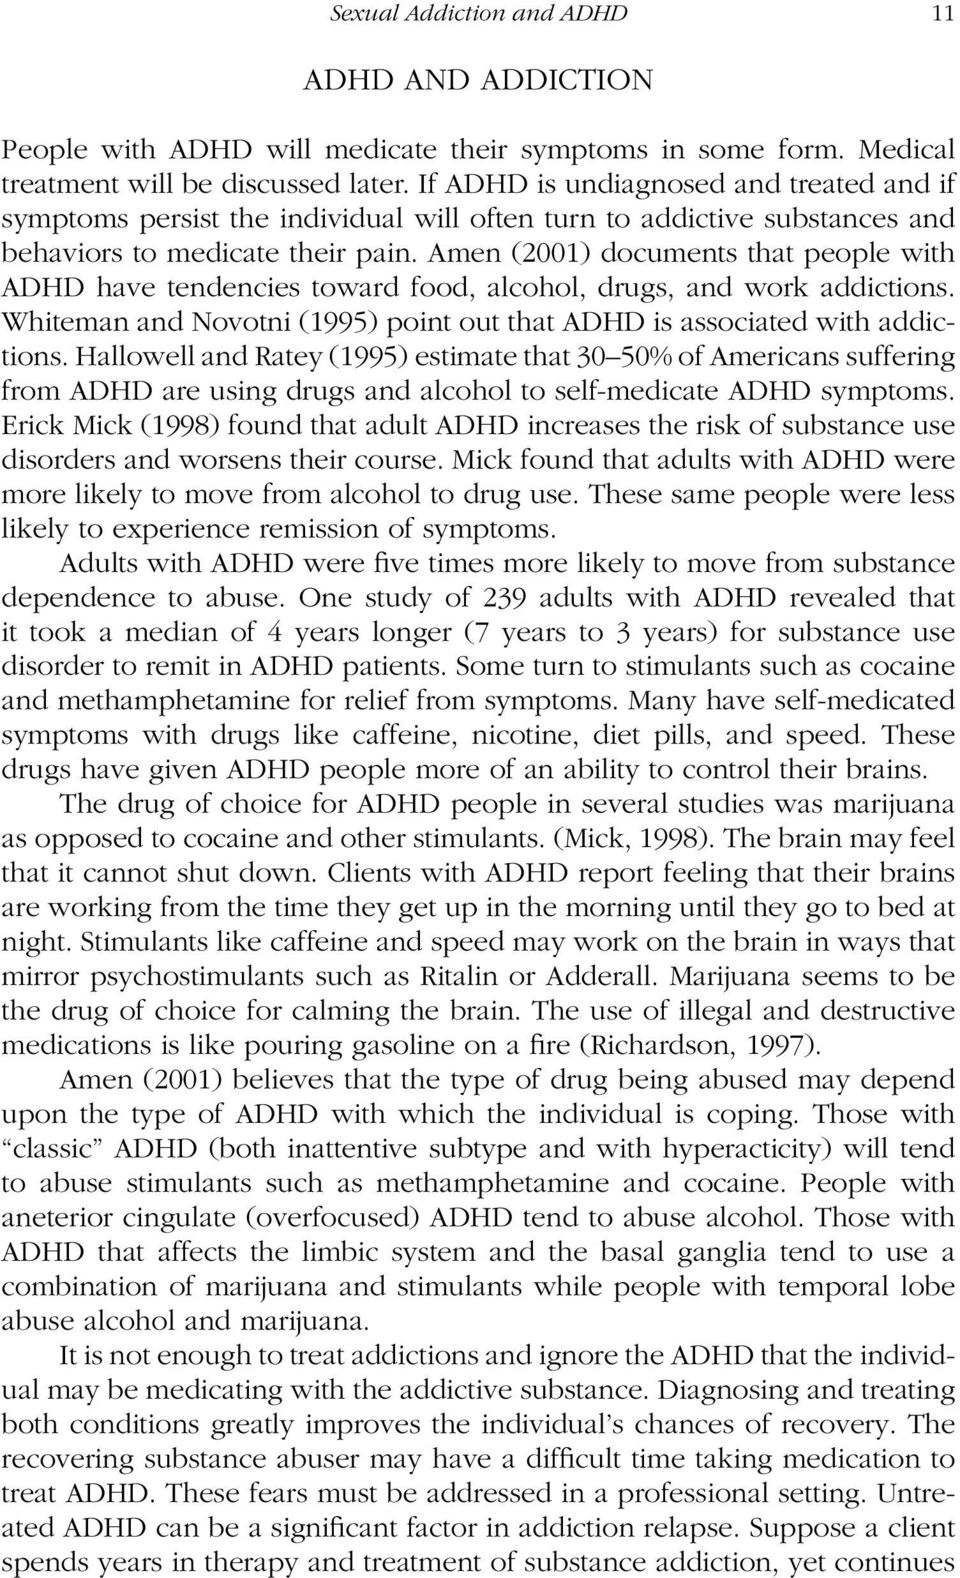 Amen (2001) documents that people with ADHD have tendencies toward food, alcohol, drugs, and work addictions. Whiteman and Novotni (1995) point out that ADHD is associated with addictions.